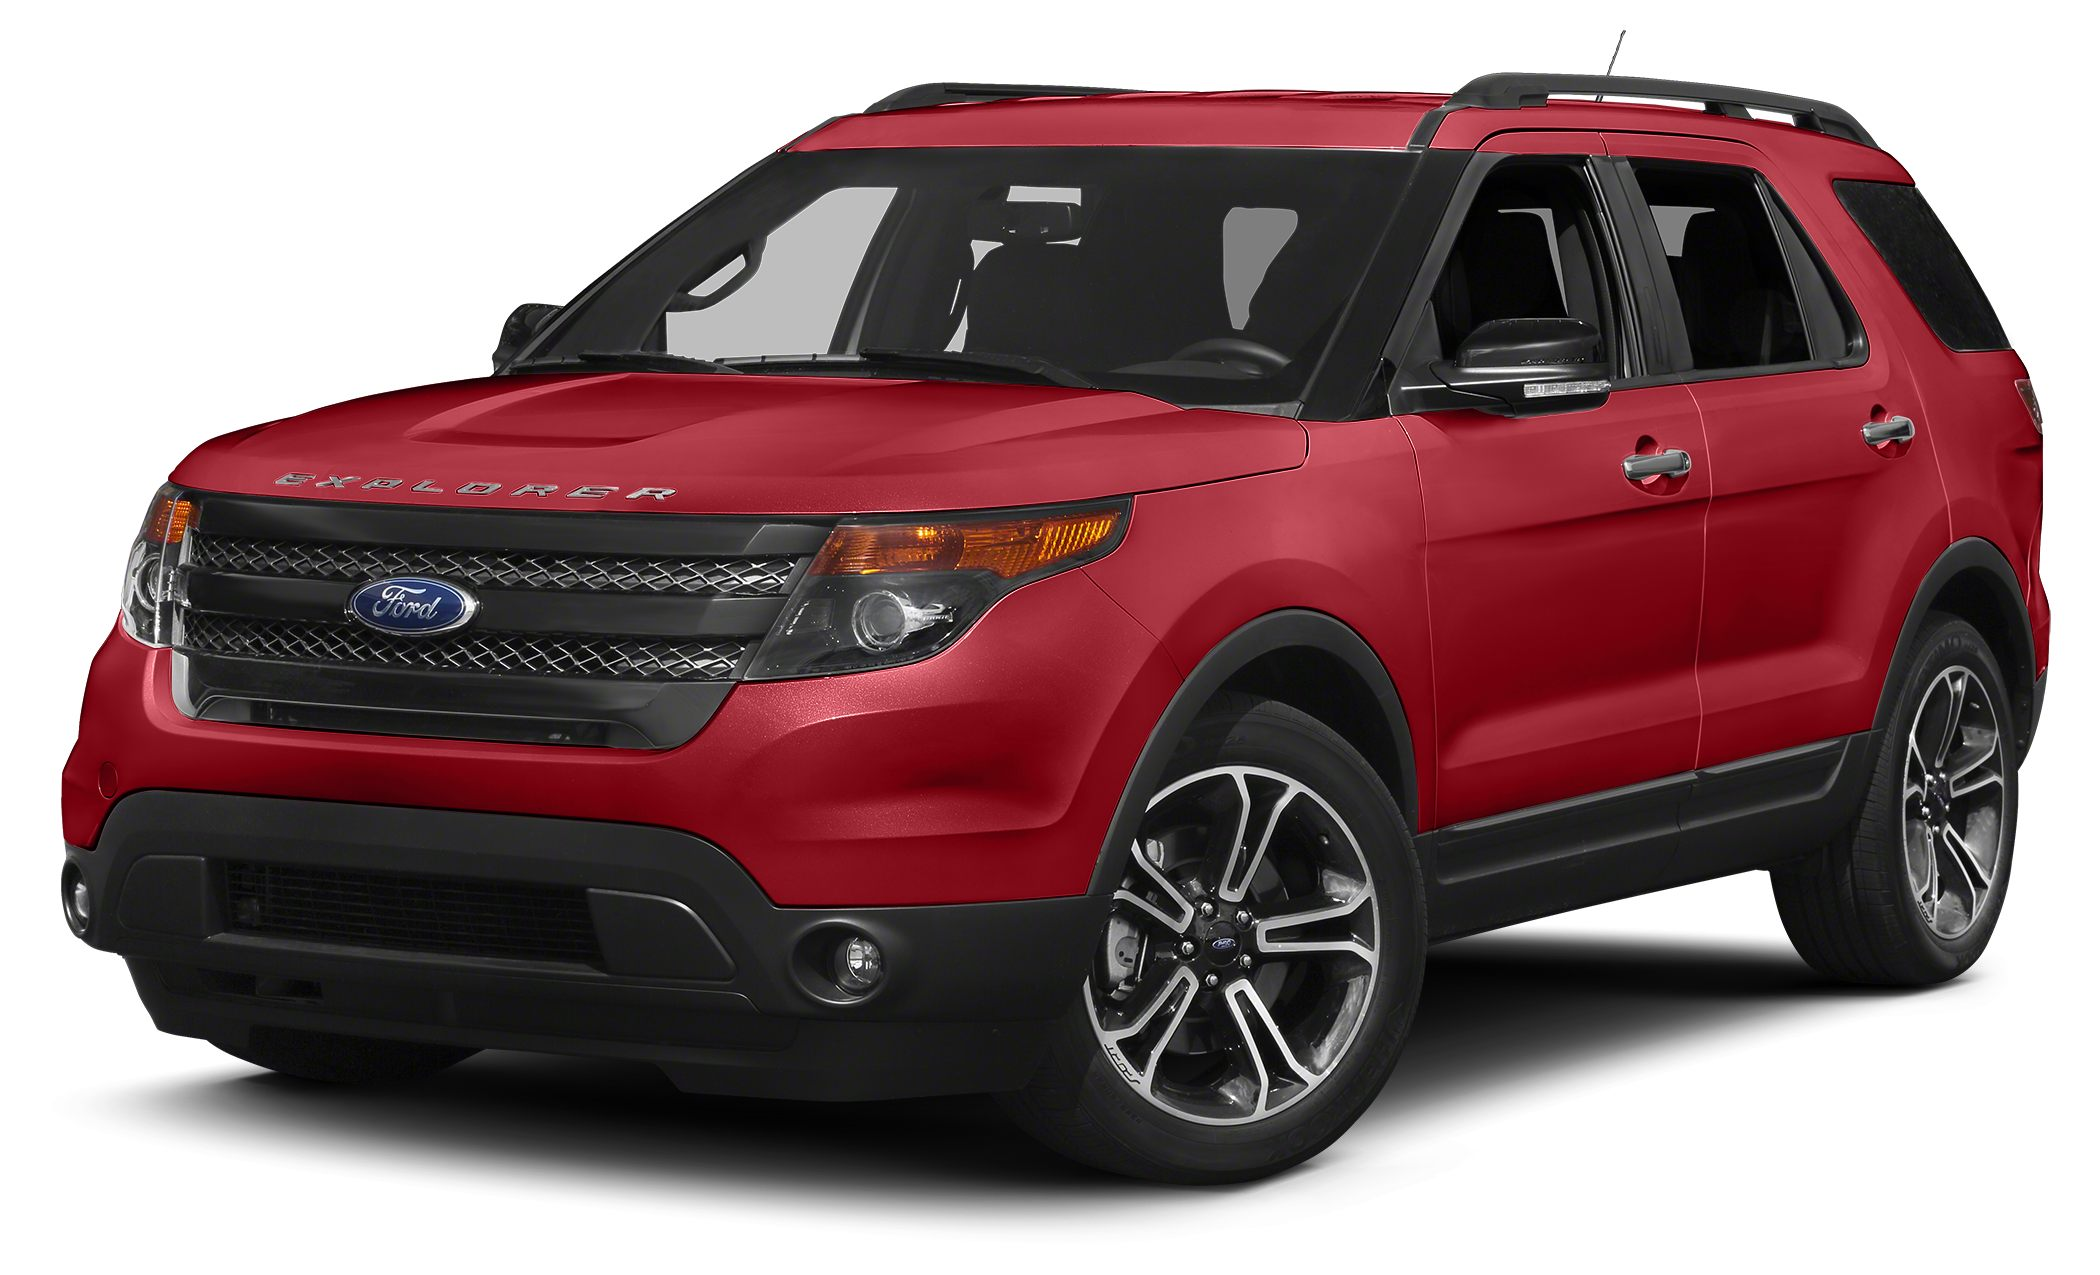 2014 Ford Explorer Sport REST EASY With its 1-Owner  Buyback Qualified CARFAX report you can re